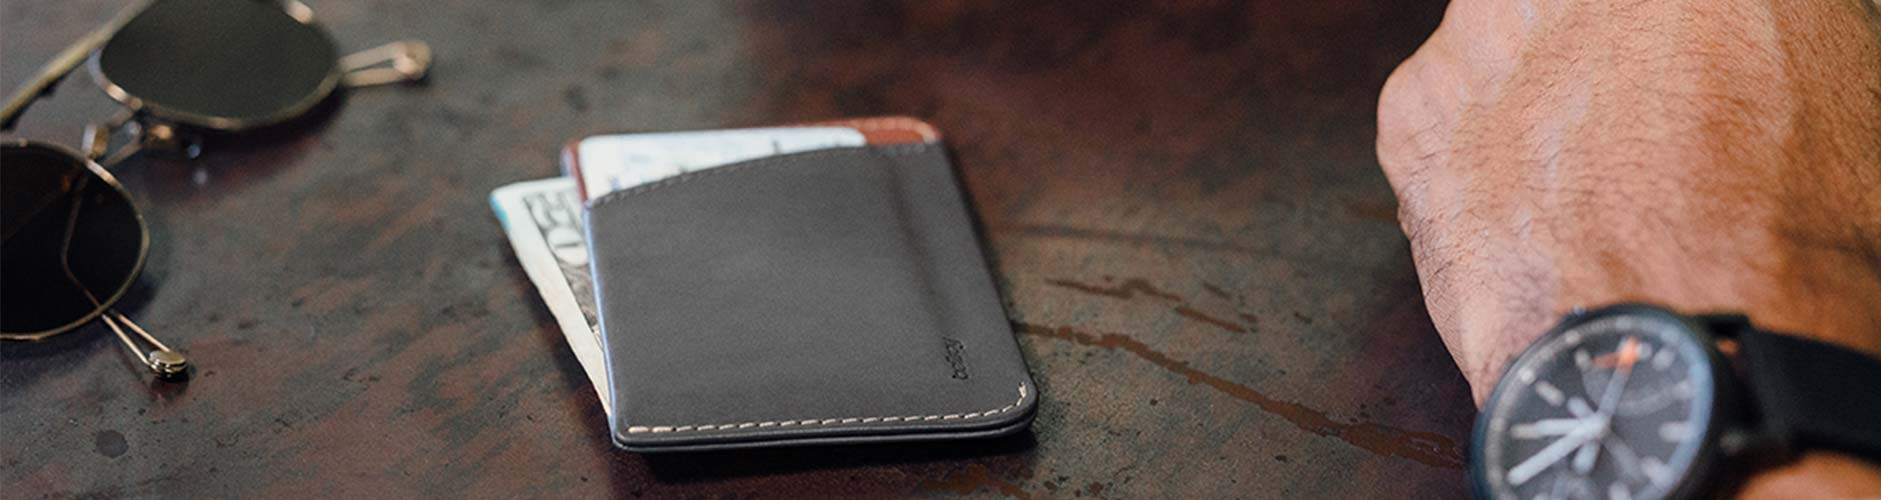 aa645a0d2f57 For the minimalist looking to carry just the essential cards and cash,  minimalist wallets offer an elegant everyday carry alternative to more  traditionally ...